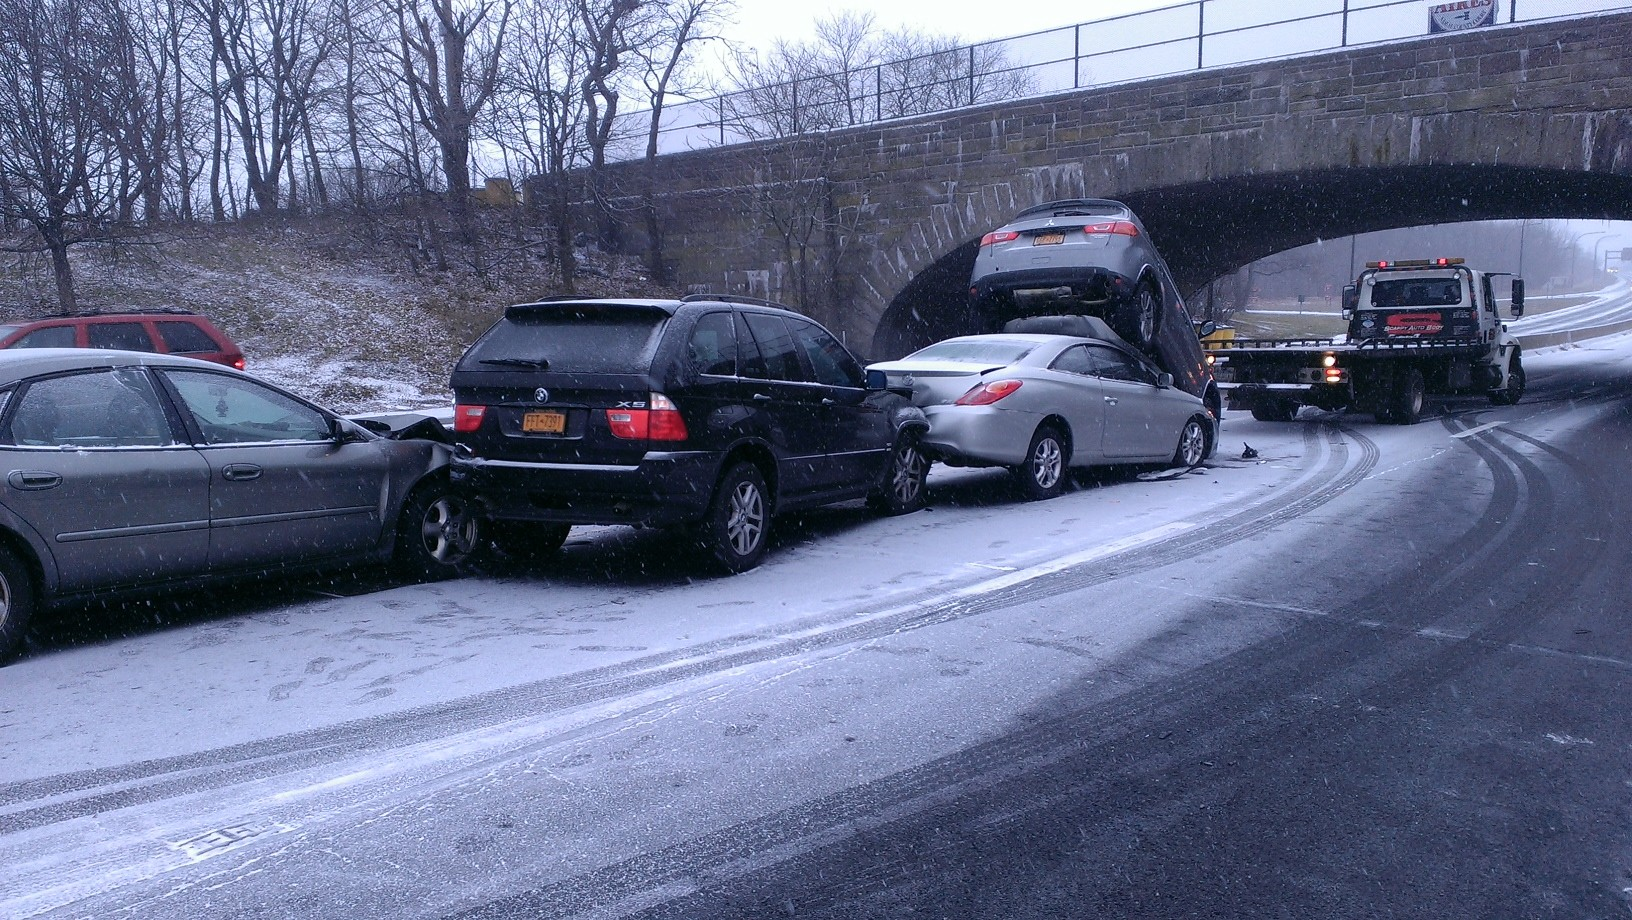 Traffic and collisions were already beginning on the Wantagh Parkway on Tuesday morning, thanks to the snow and icy temperatures.